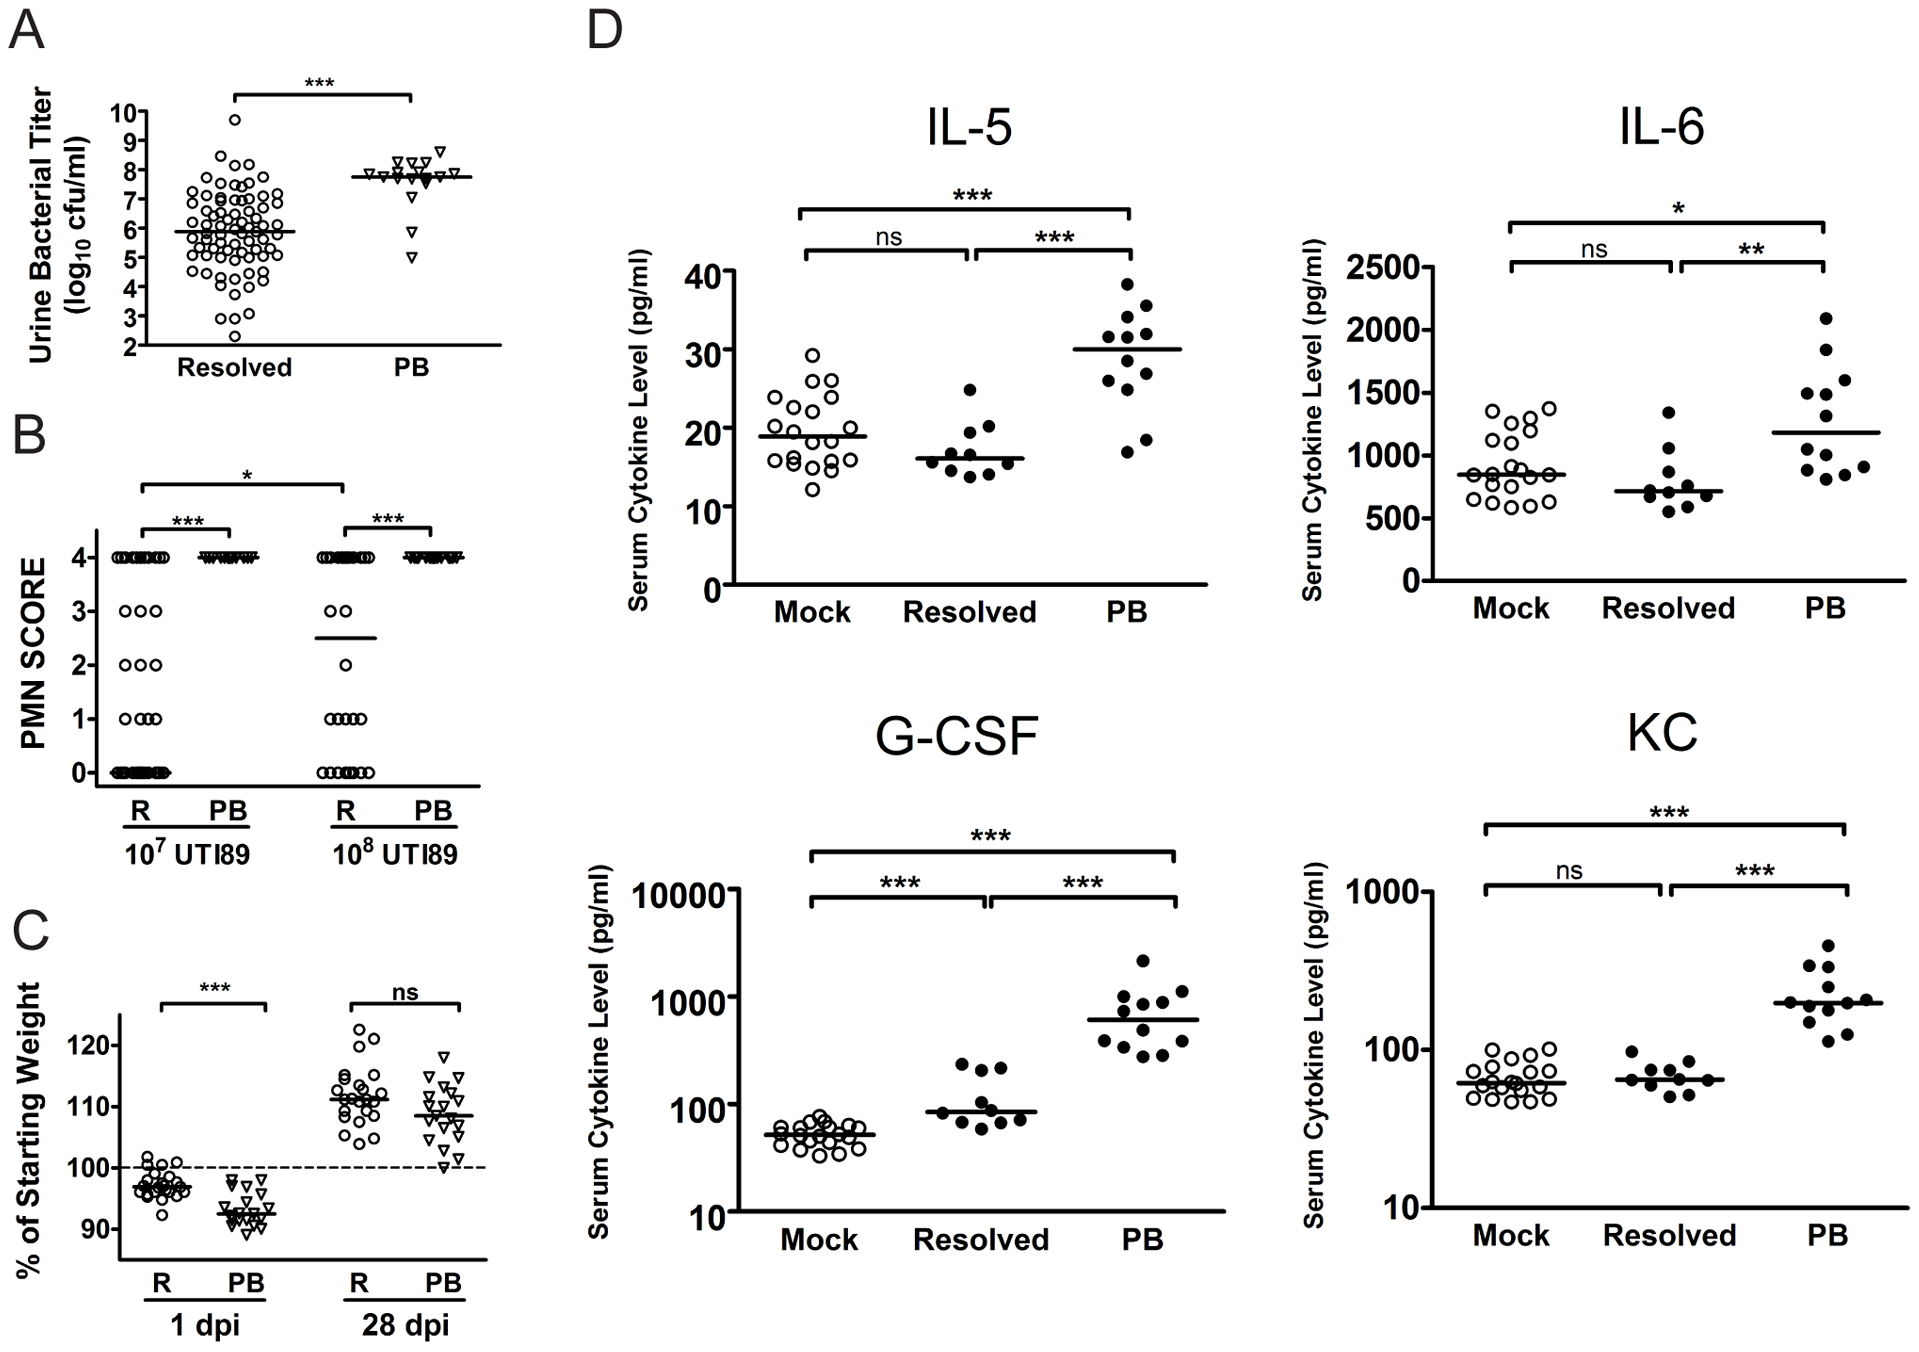 C3H/HeN mice that develop chronic cystitis can be distinguished from their cage mates by several parameters of infection and host response at 24 hpi.